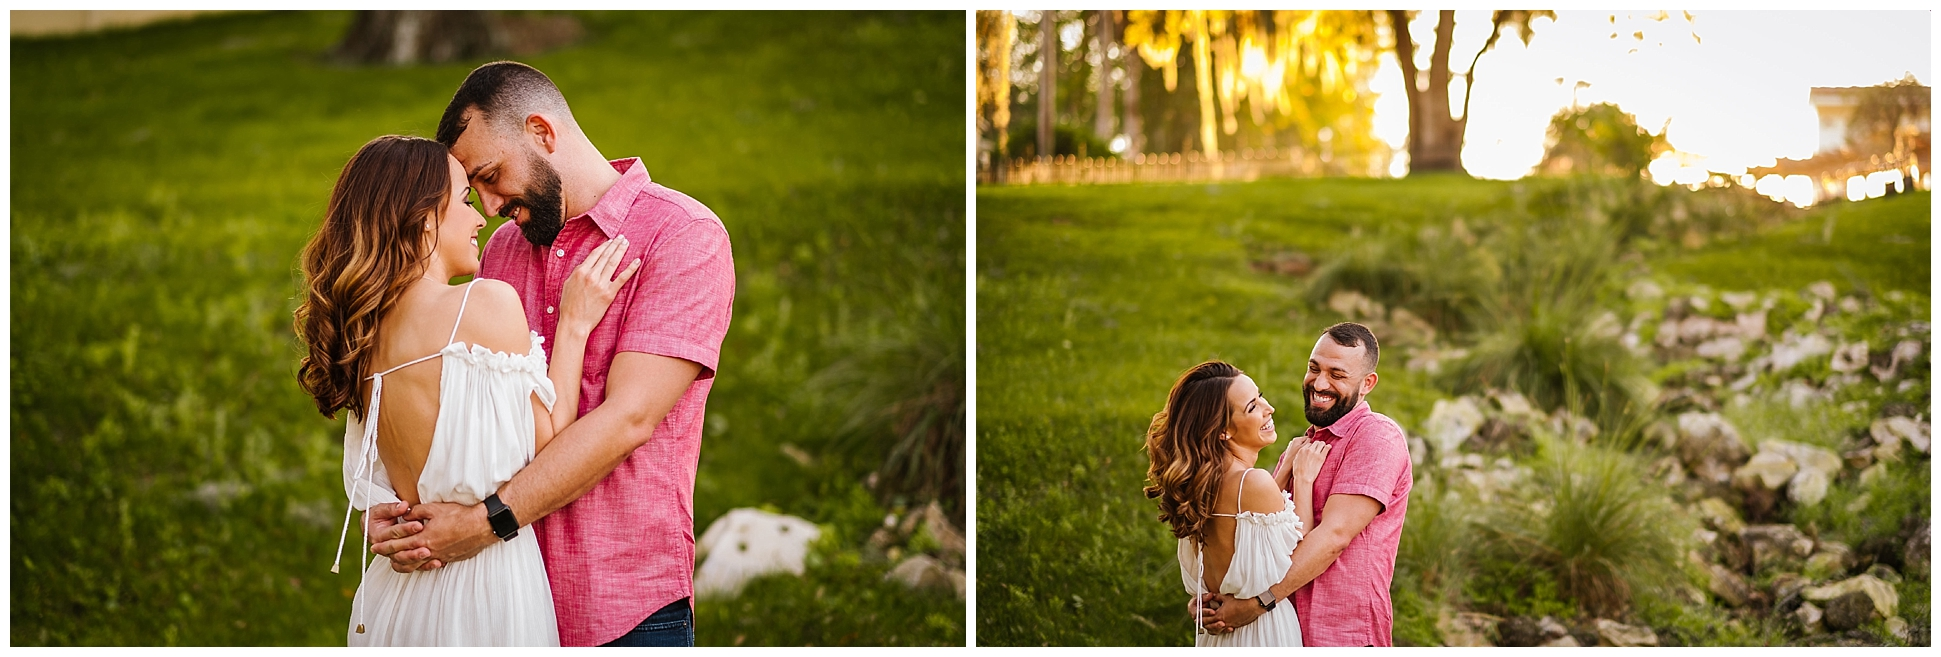 Tampa-sunset-horse-engagement session_0051.jpg